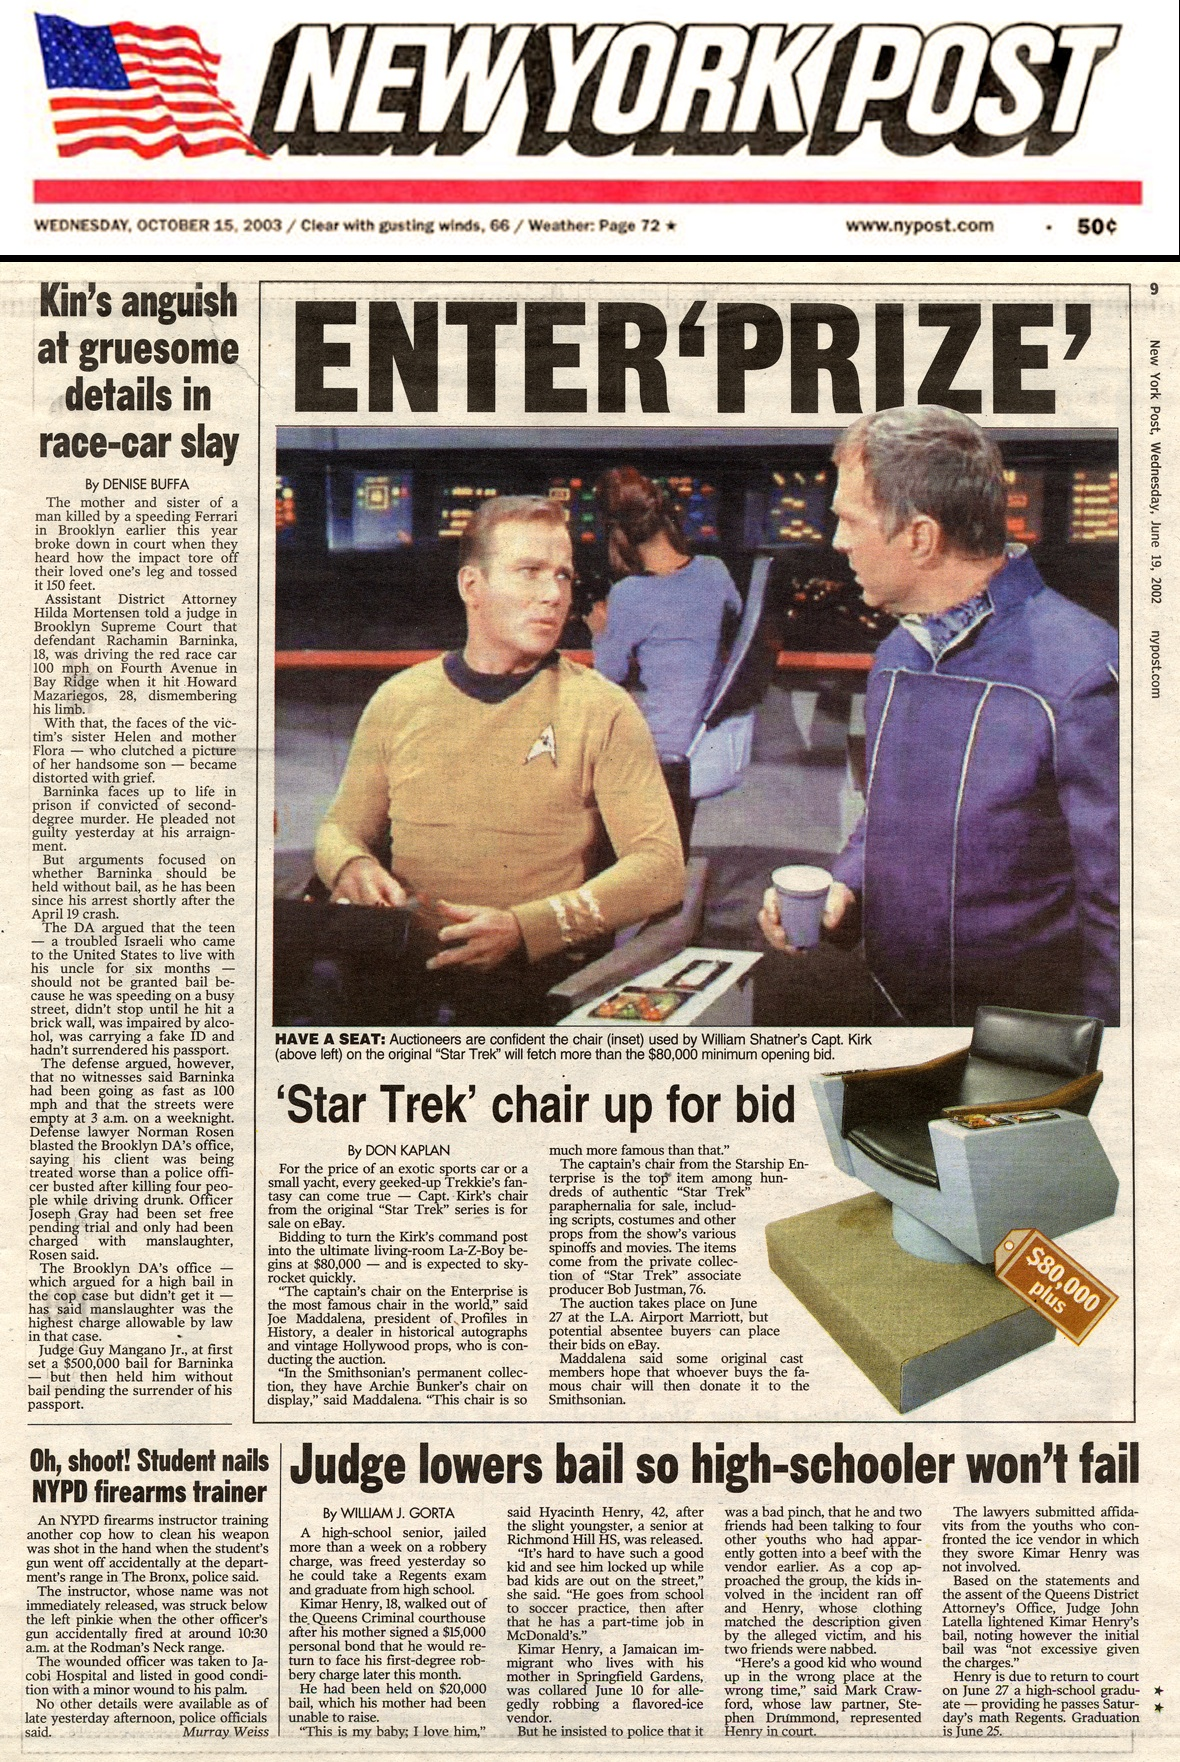 new york post snip it, star trek chair up for bid, photo of captain kirk old and young on the cover